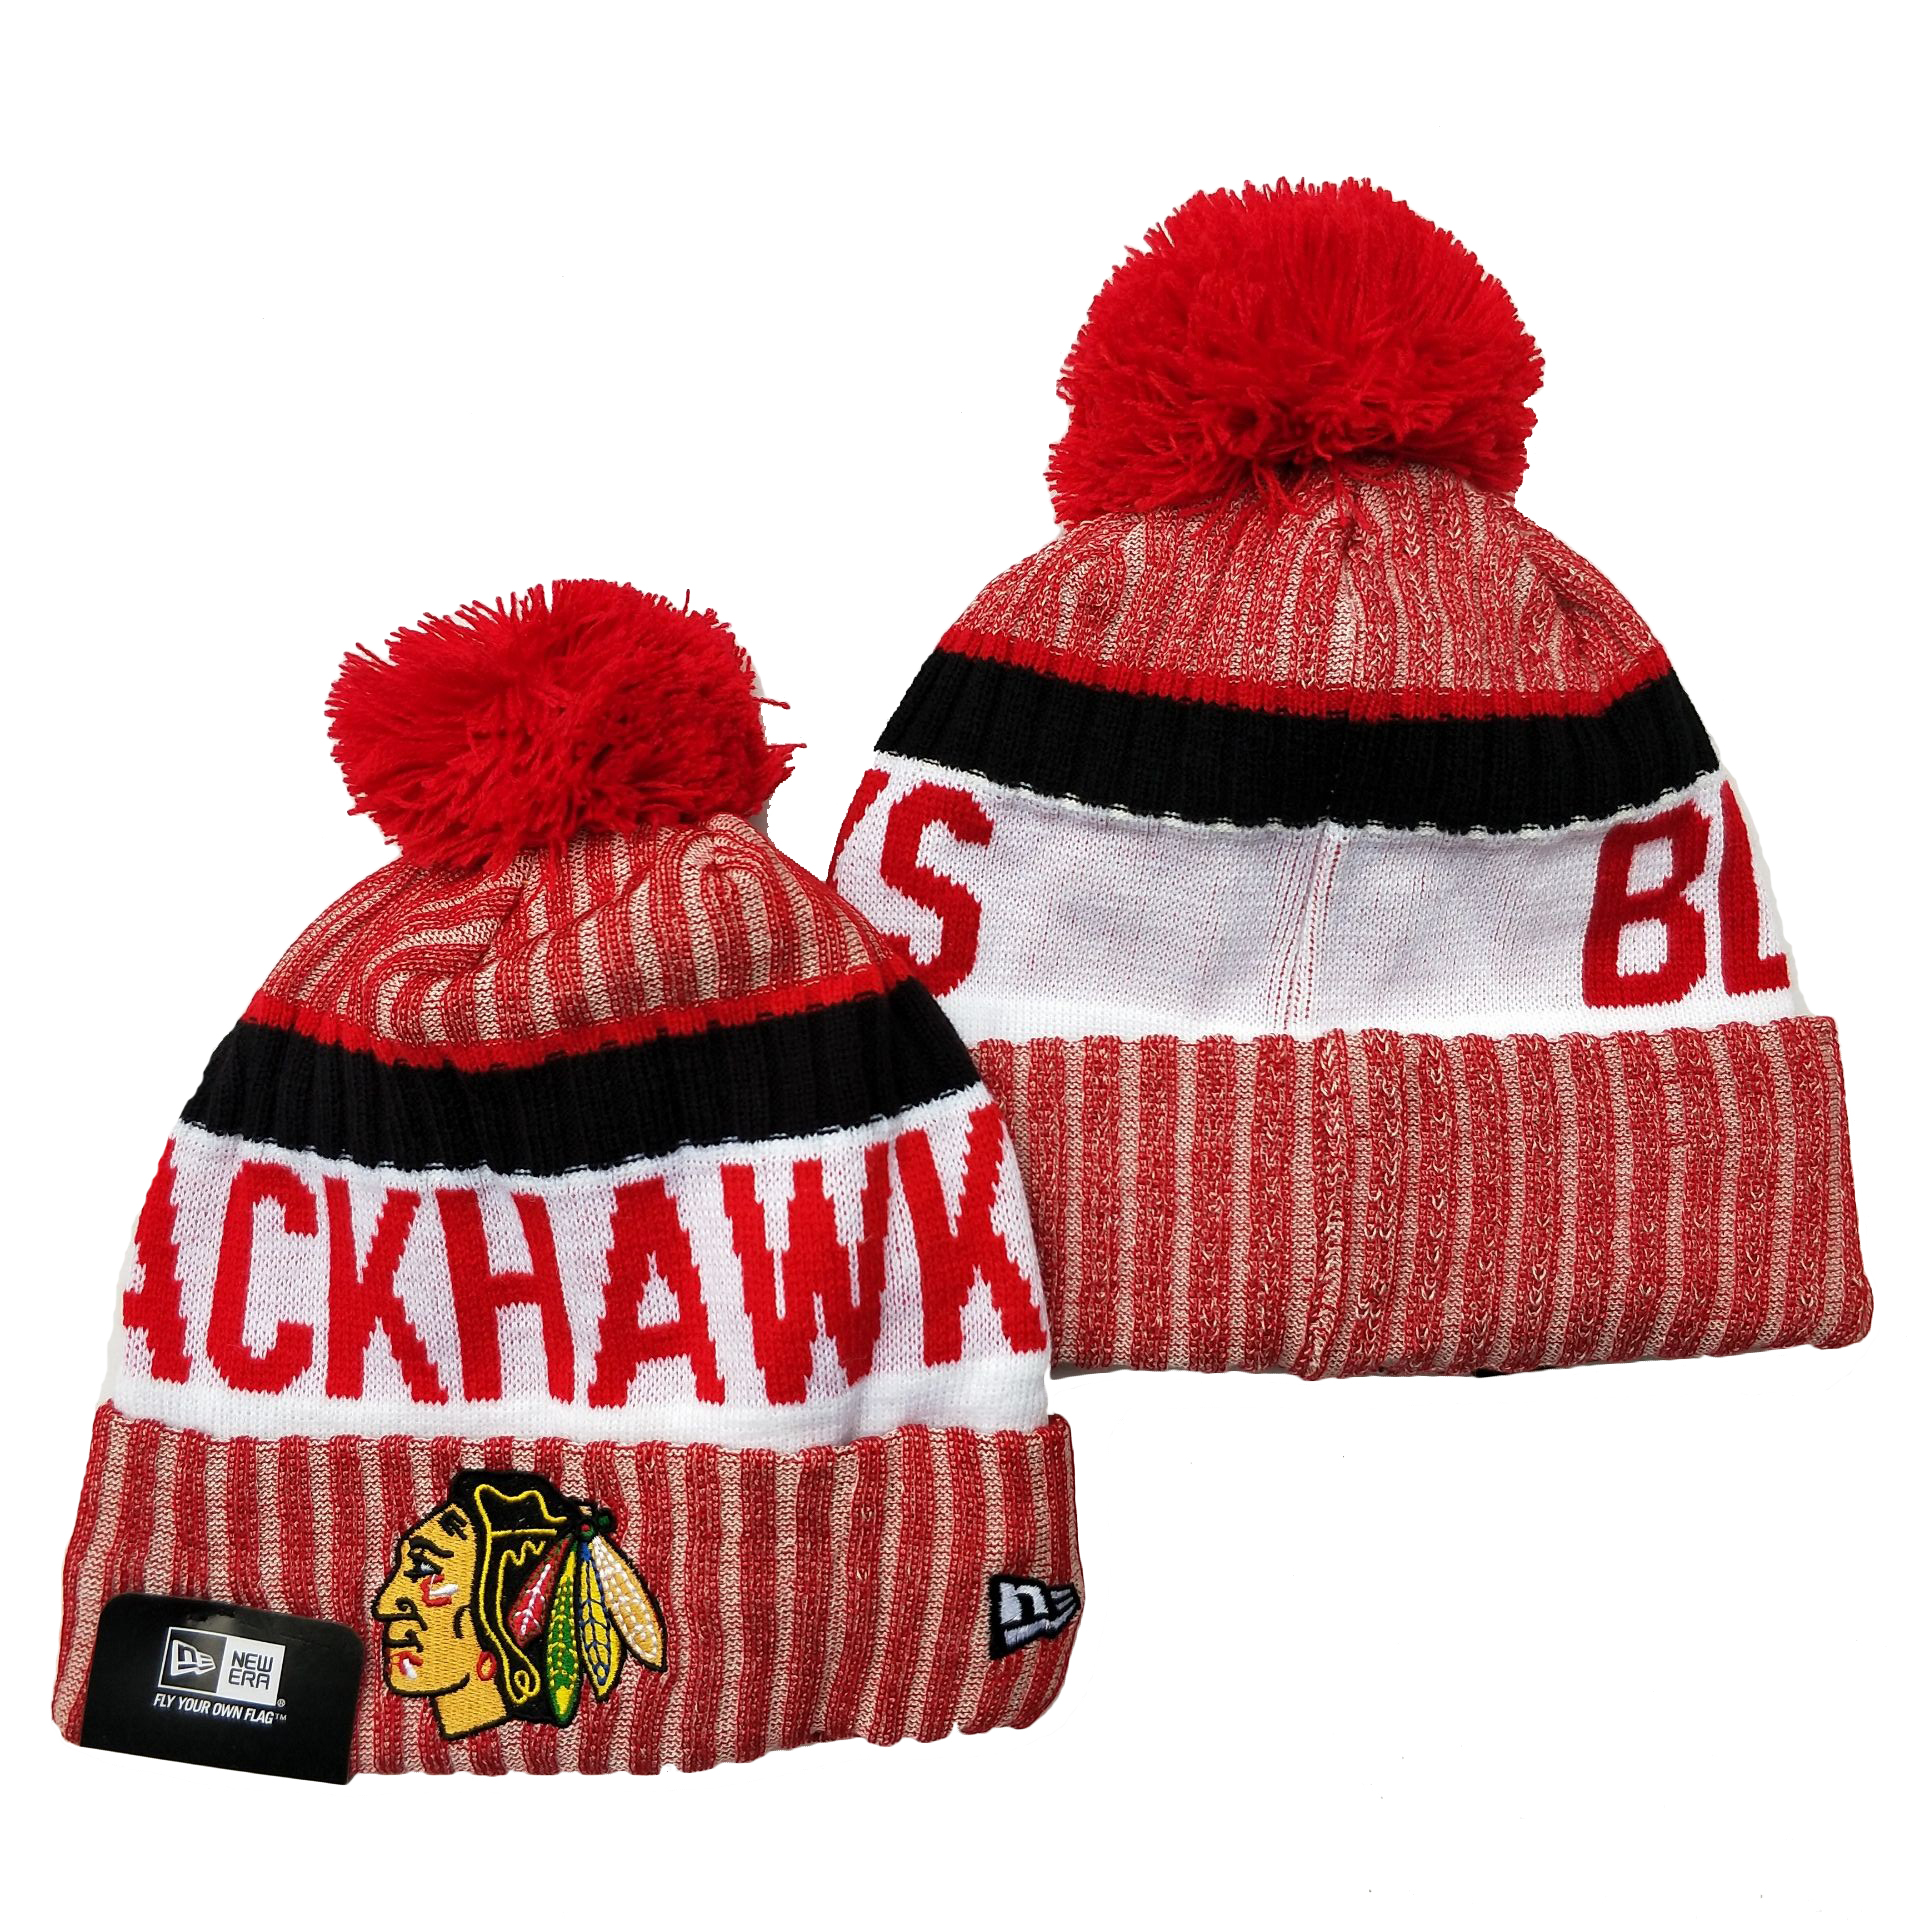 Blackhawks Team Logo Red Cuffed Knit Hat YD